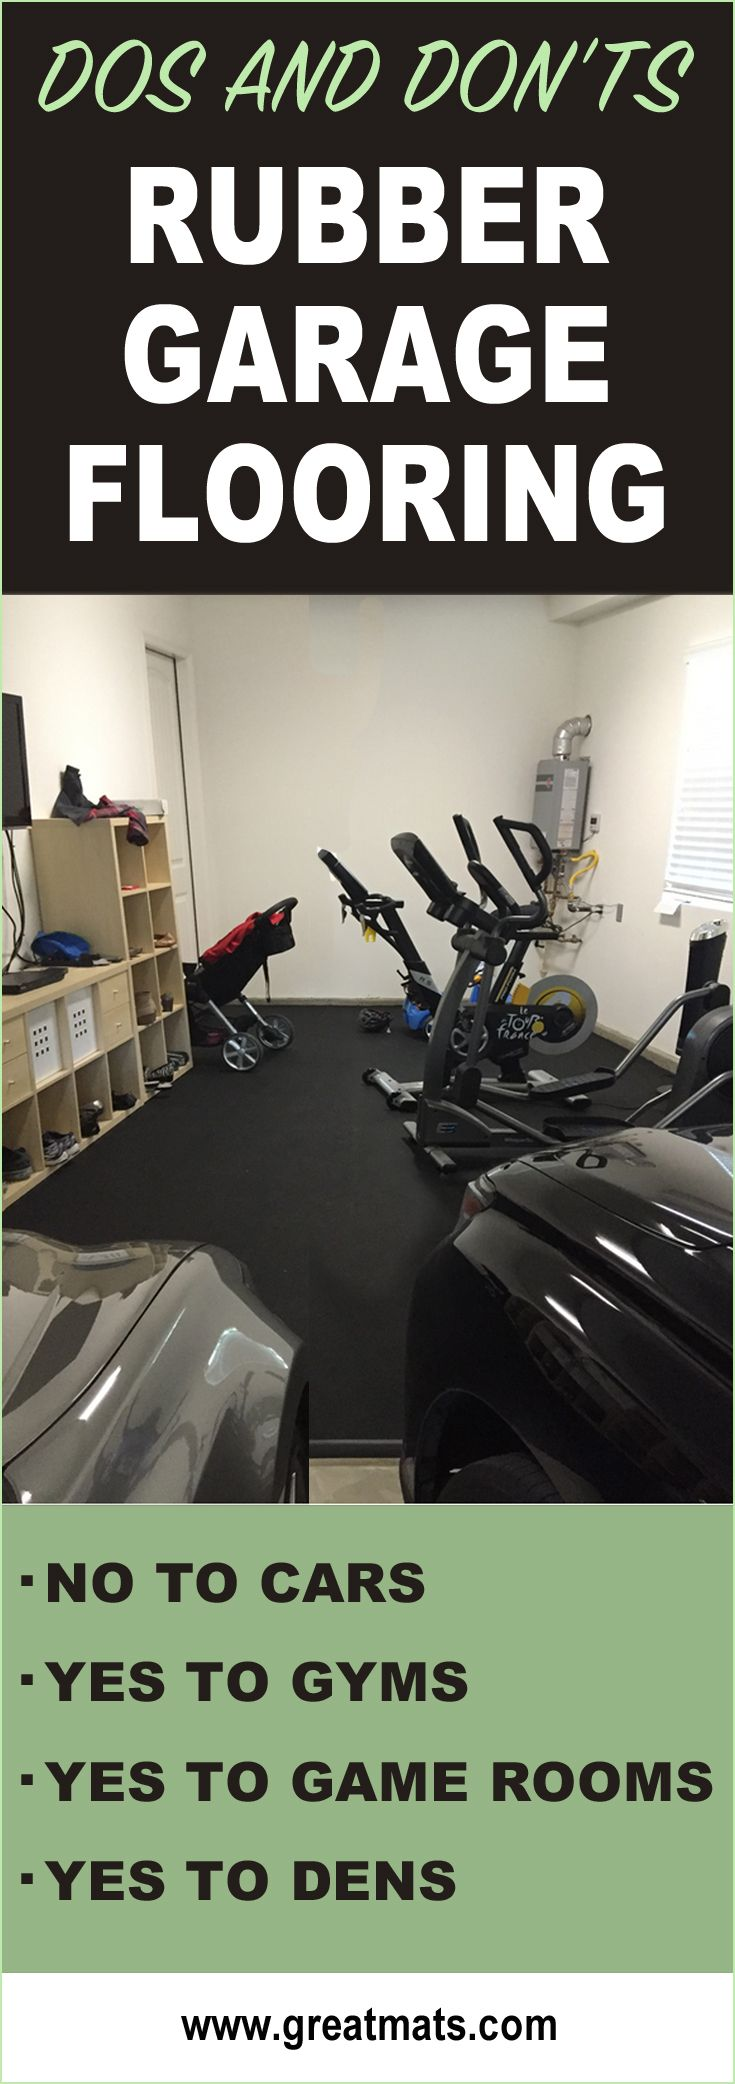 When Is The Right Time To Use Rubber Flooring In Your Garage?